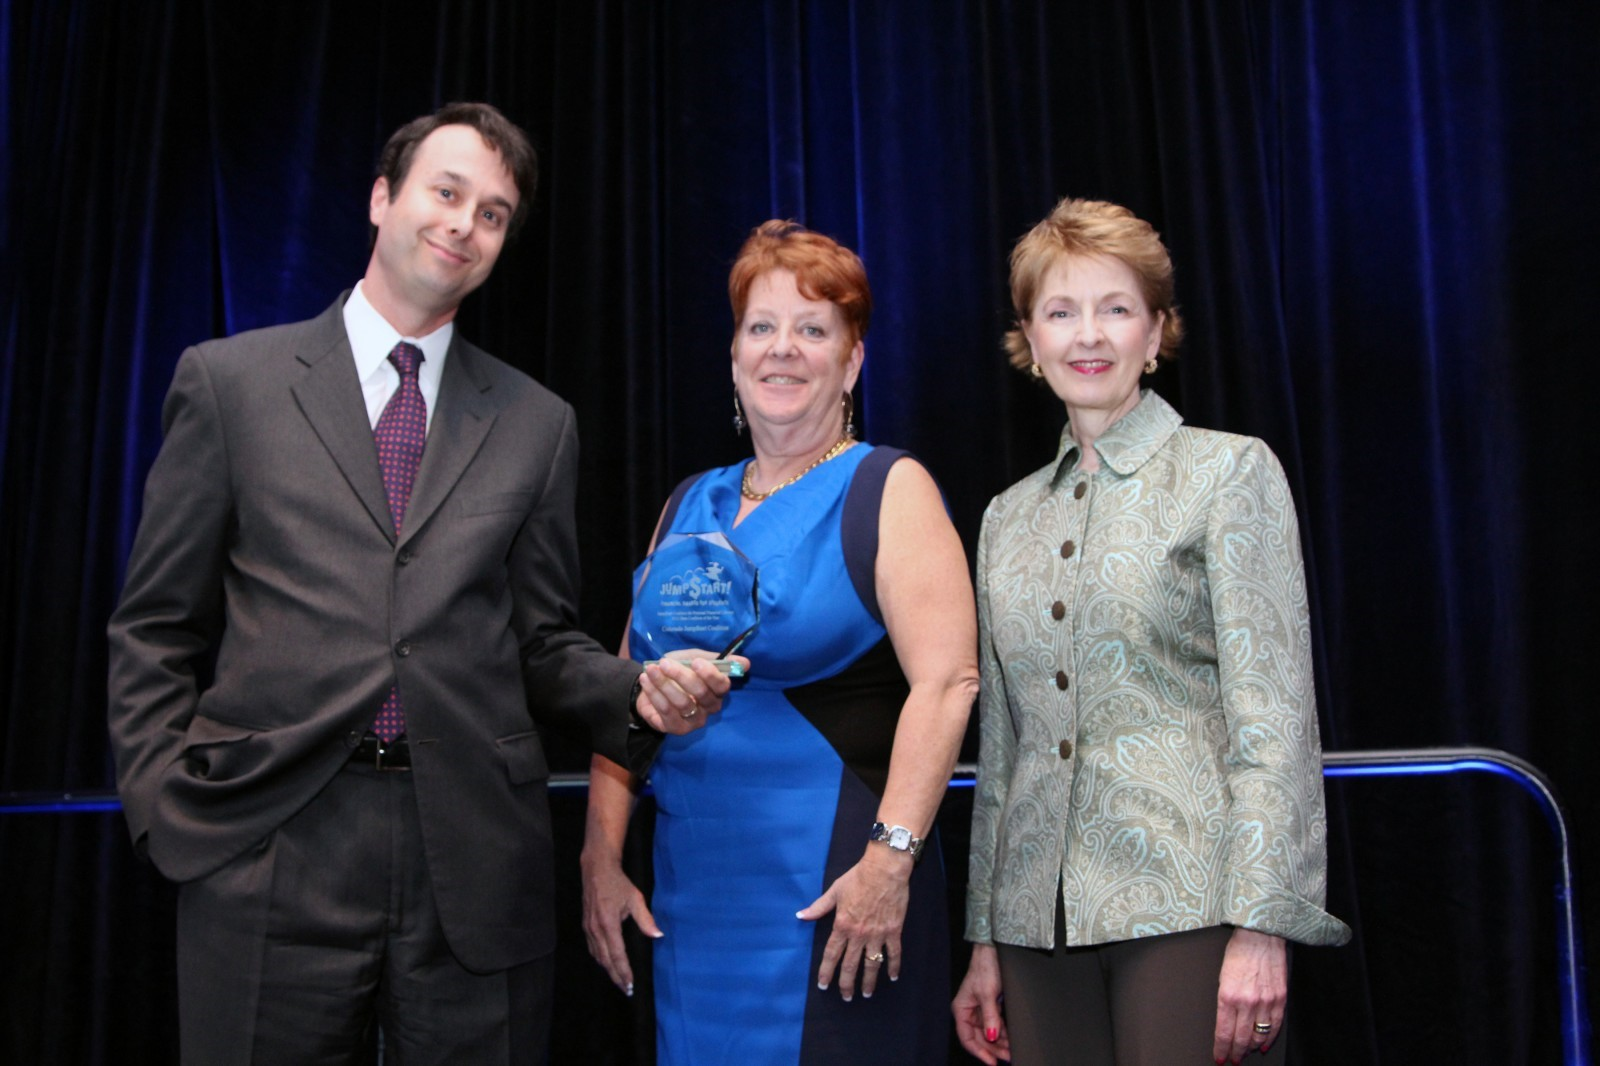 The Colorado Jump$tart Coalition accepts the 2013 State Coalition of the Year Award. Those pictured above include (from left to right): Jason Alderman, Visa Inc; Colorado Jump$tart Coalition Executive Director, C.J. Juleff; and Mary Medley, President & CEO, Colorado Society of CPAs and chairman of the Colorado Coalition board of directors.